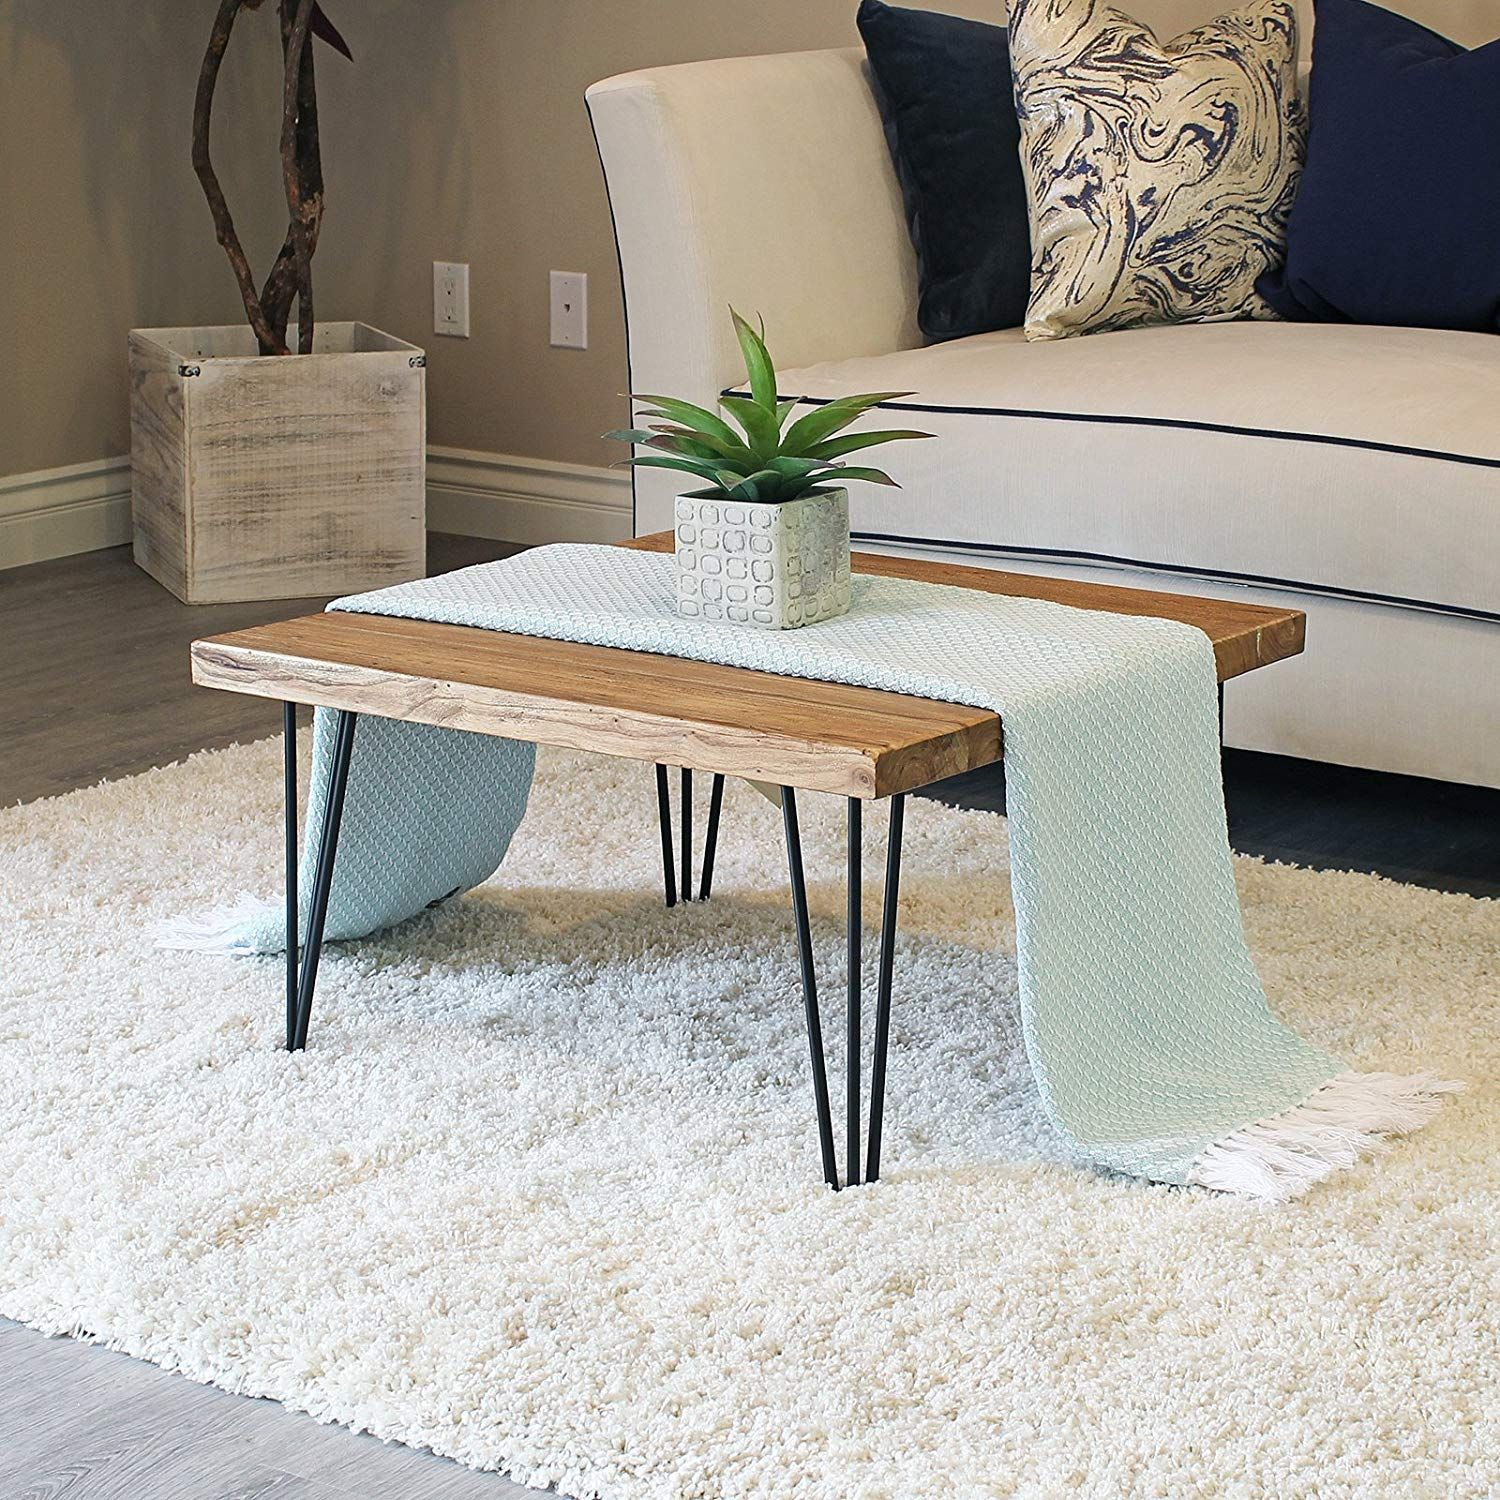 Hairpin Legs For Coffee Table Diy Coffee Table Wood Elm Coffee Table Round Wood Coffee Table [ 1500 x 1500 Pixel ]